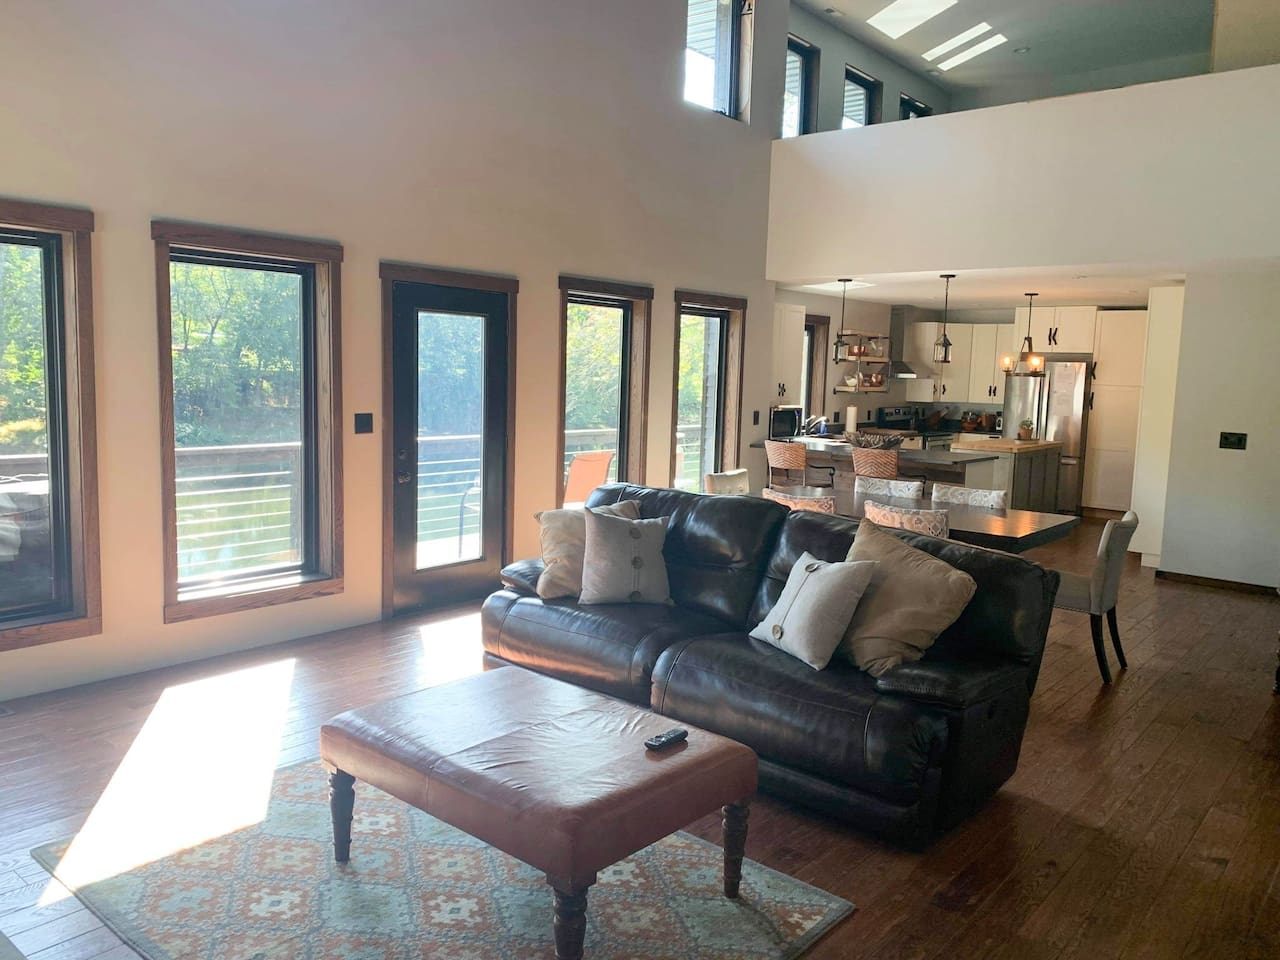 Wide open floor plan with huge windows for spectacular views of the river.